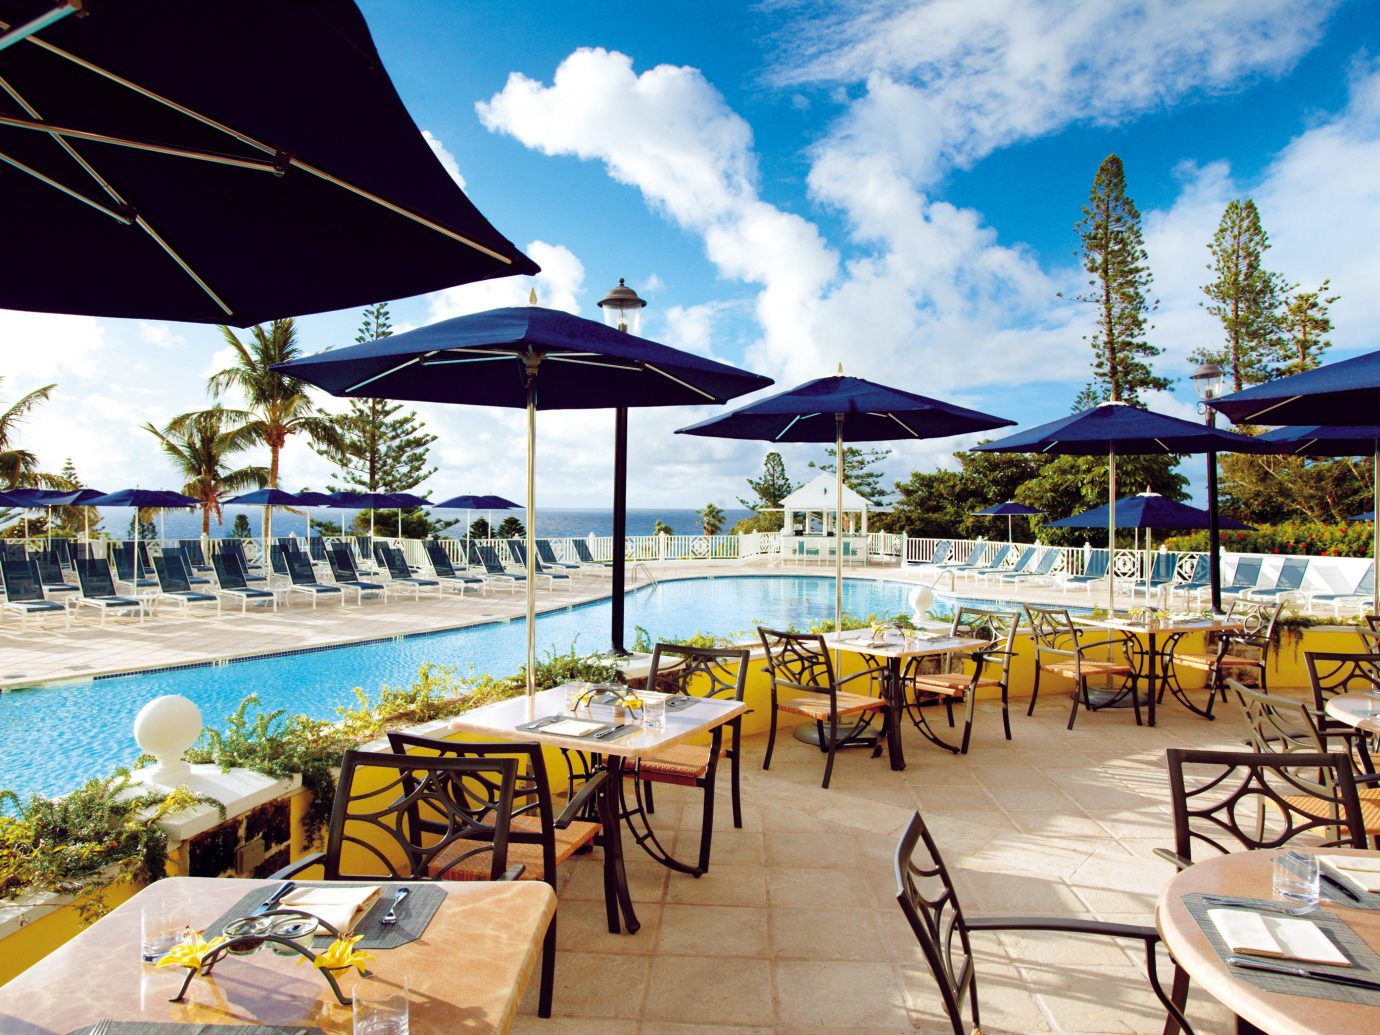 Beachfront Dining Drink Eat Hotels Play Pool sky umbrella chair outdoor table leisure lawn Resort vacation restaurant tourism estate Beach set caribbean furniture several shade swimming